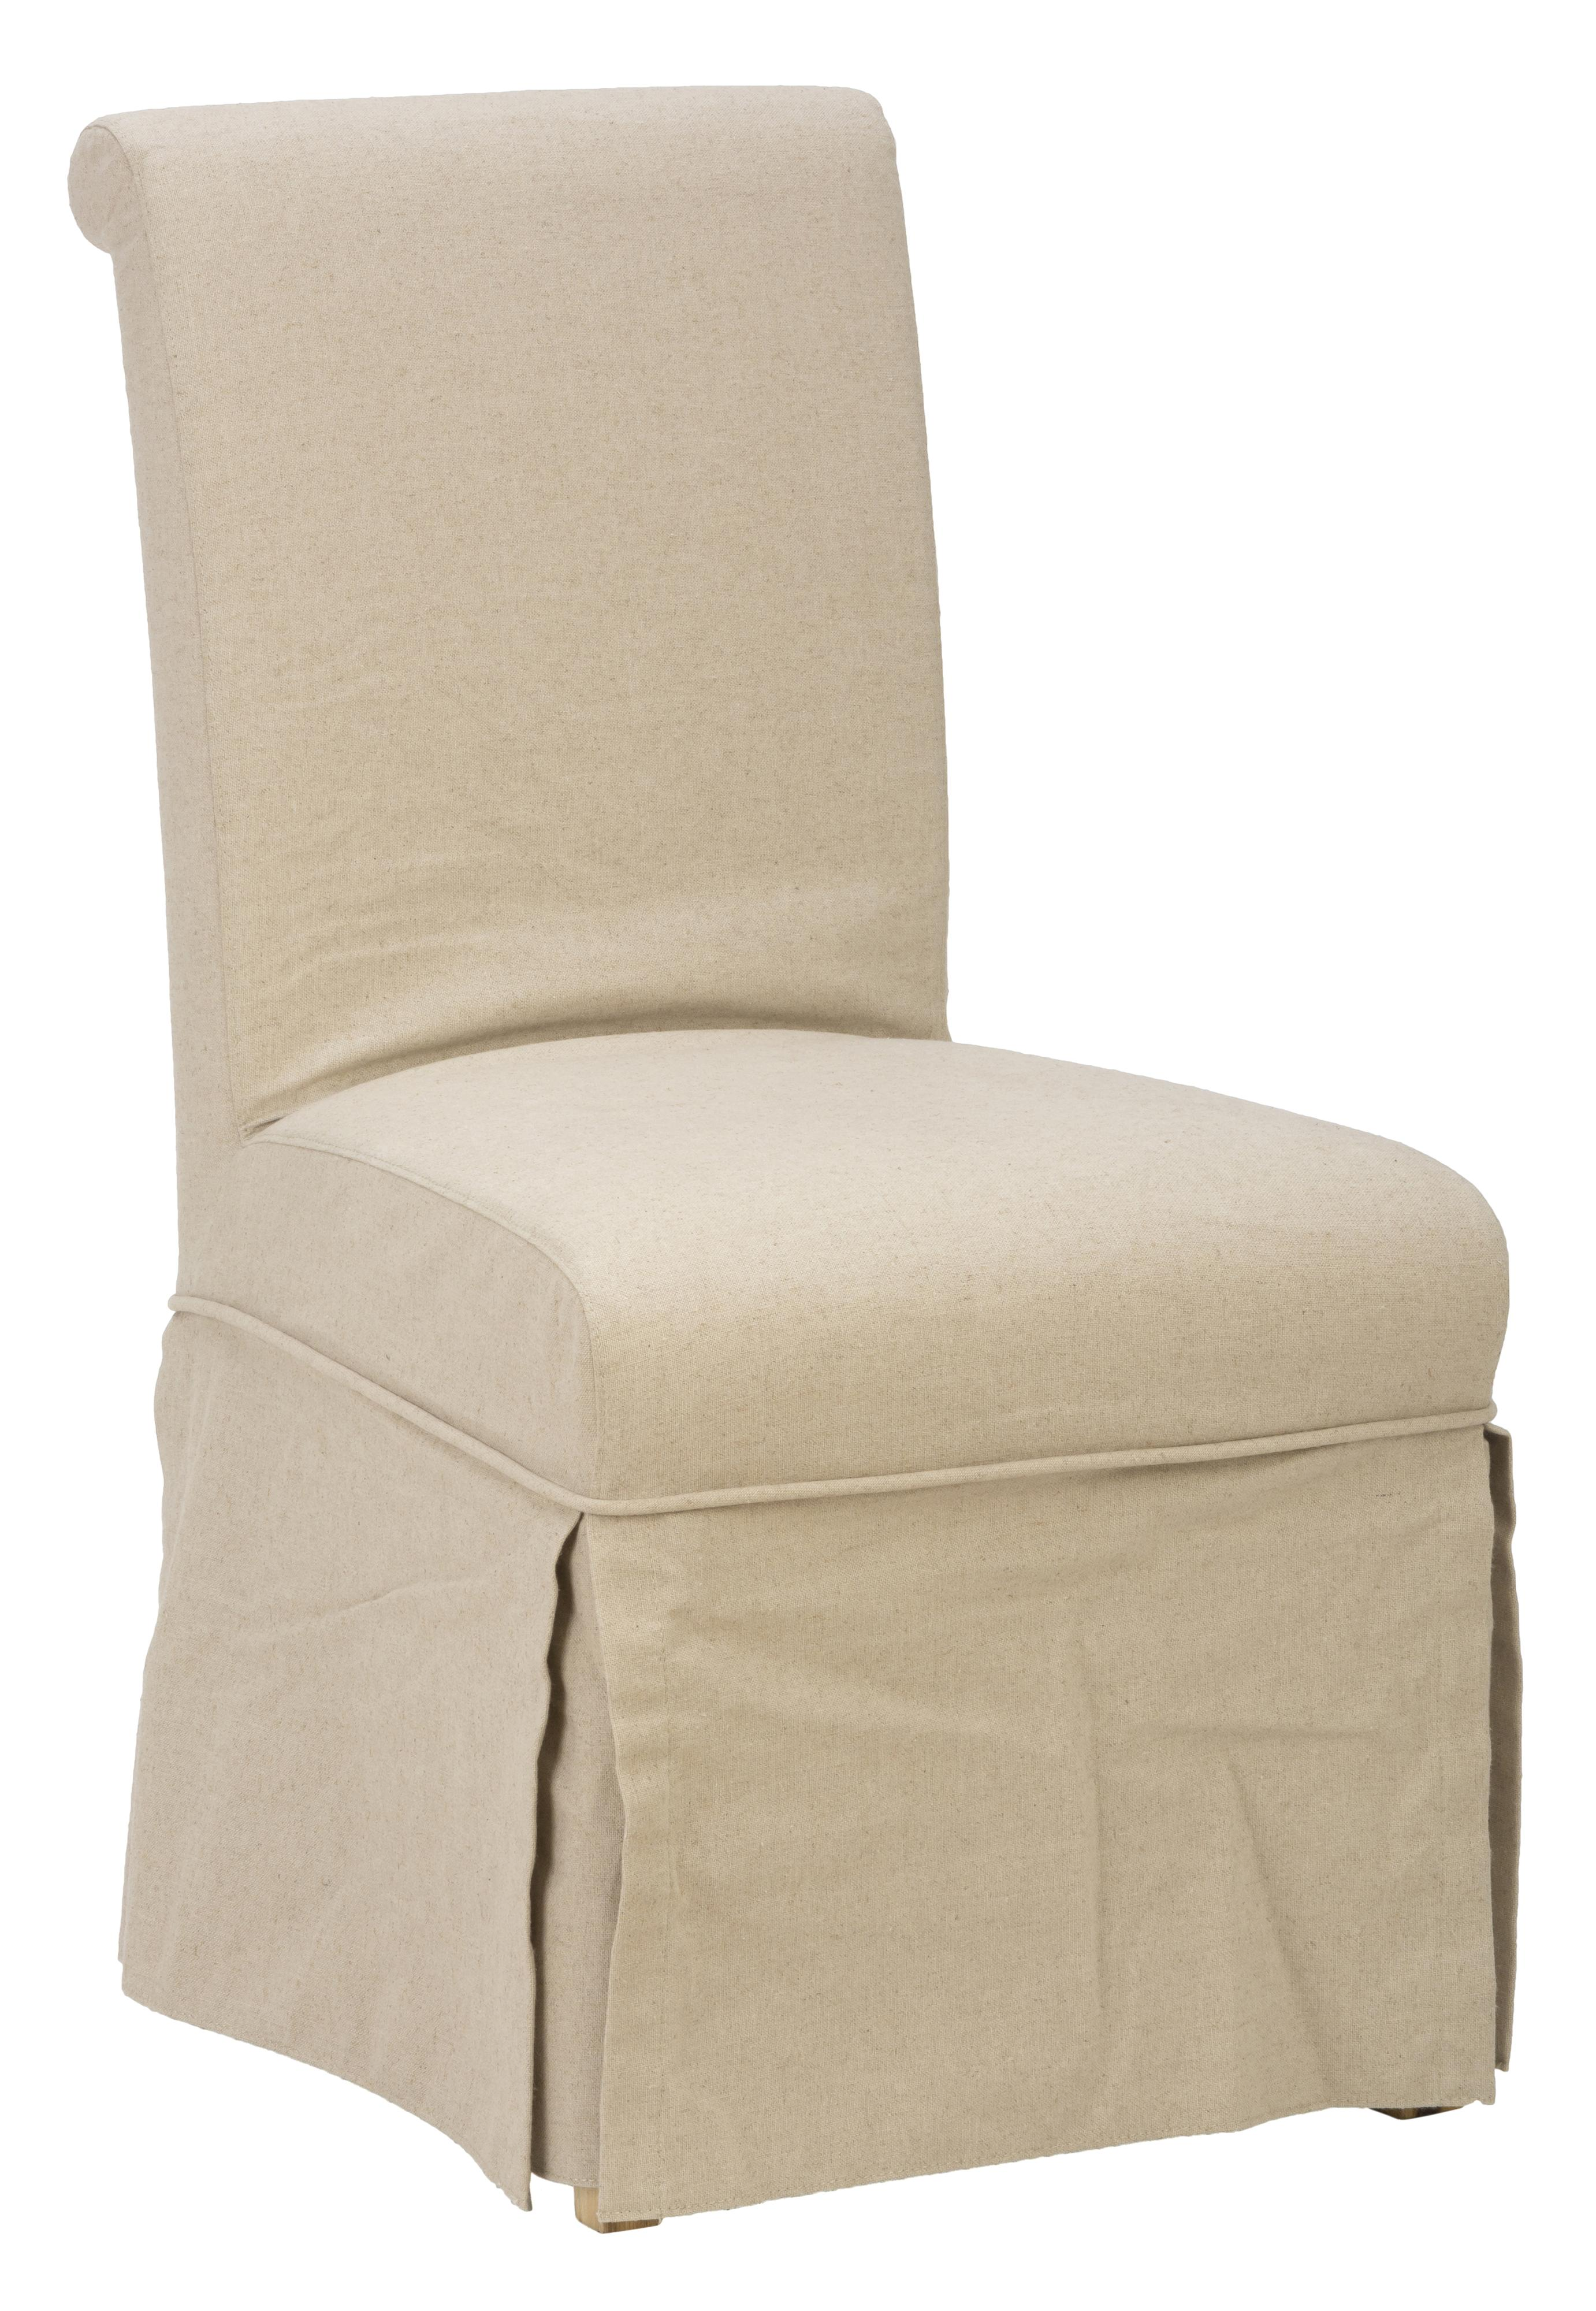 Linen Dining Chair Covers Jofran Slater Mill Pine Slipcover Skirted Parson Chair